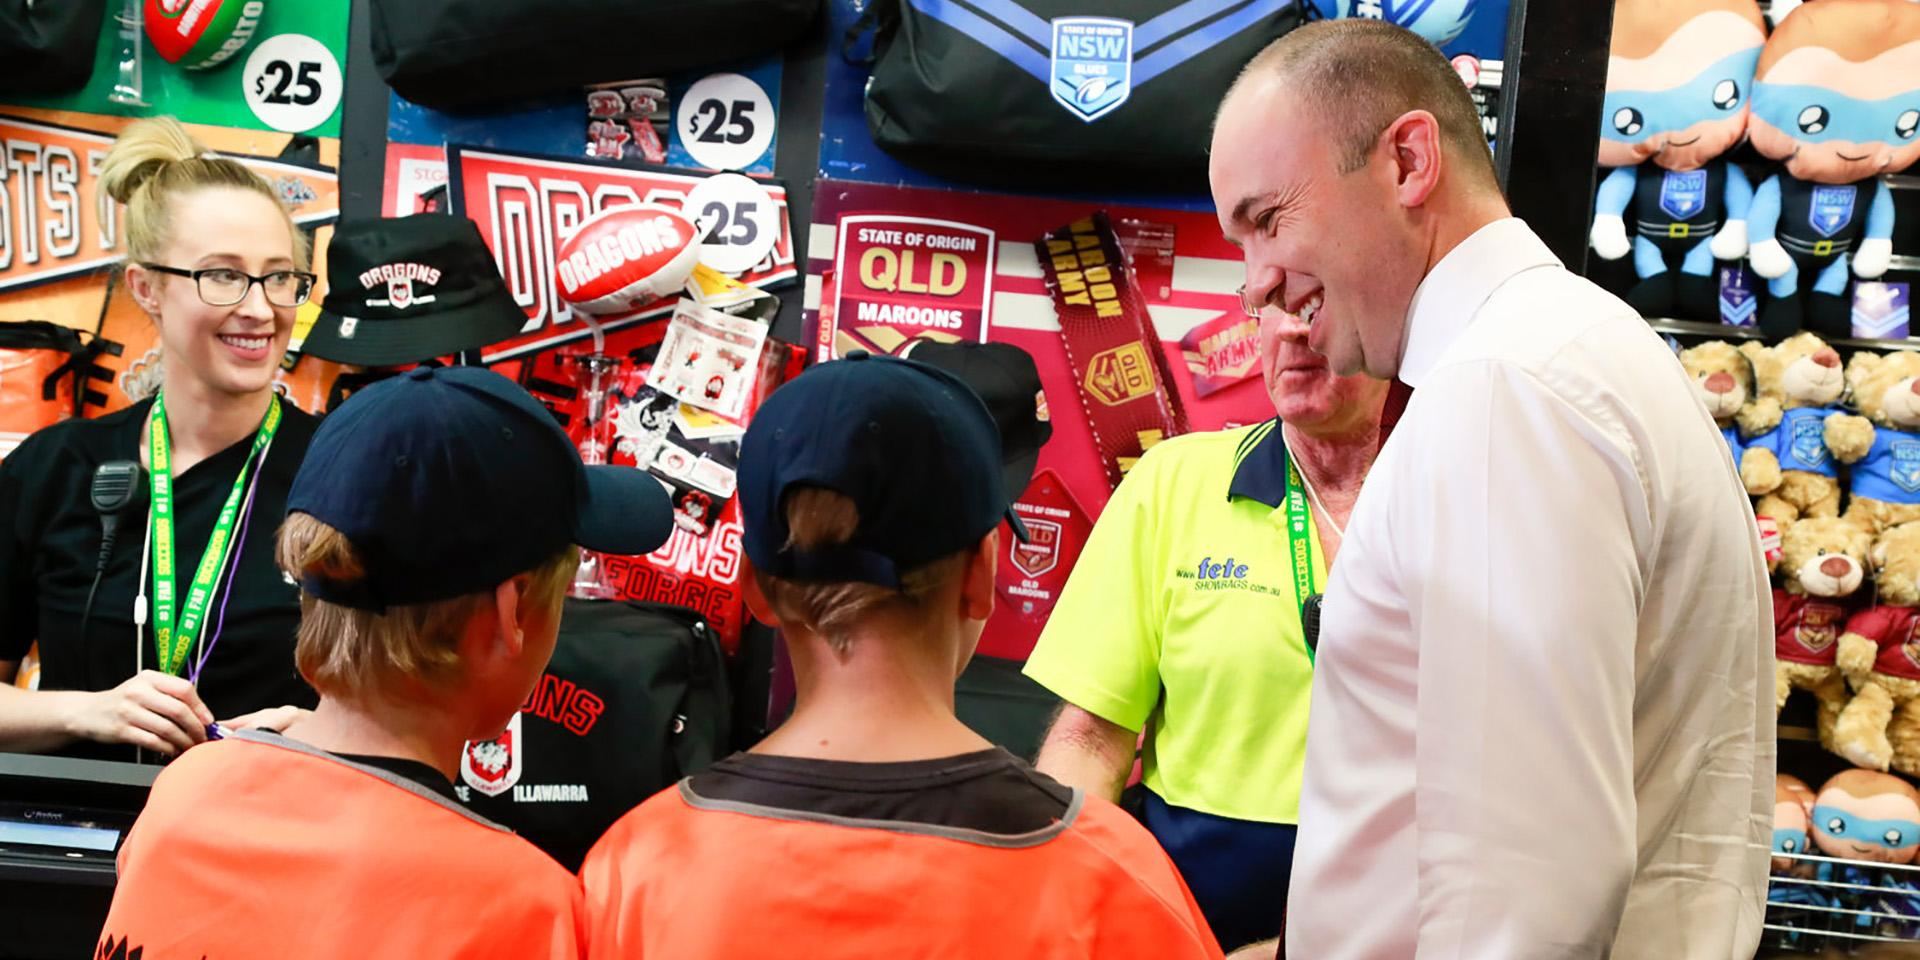 Fair Trading inspects Easter Show bags